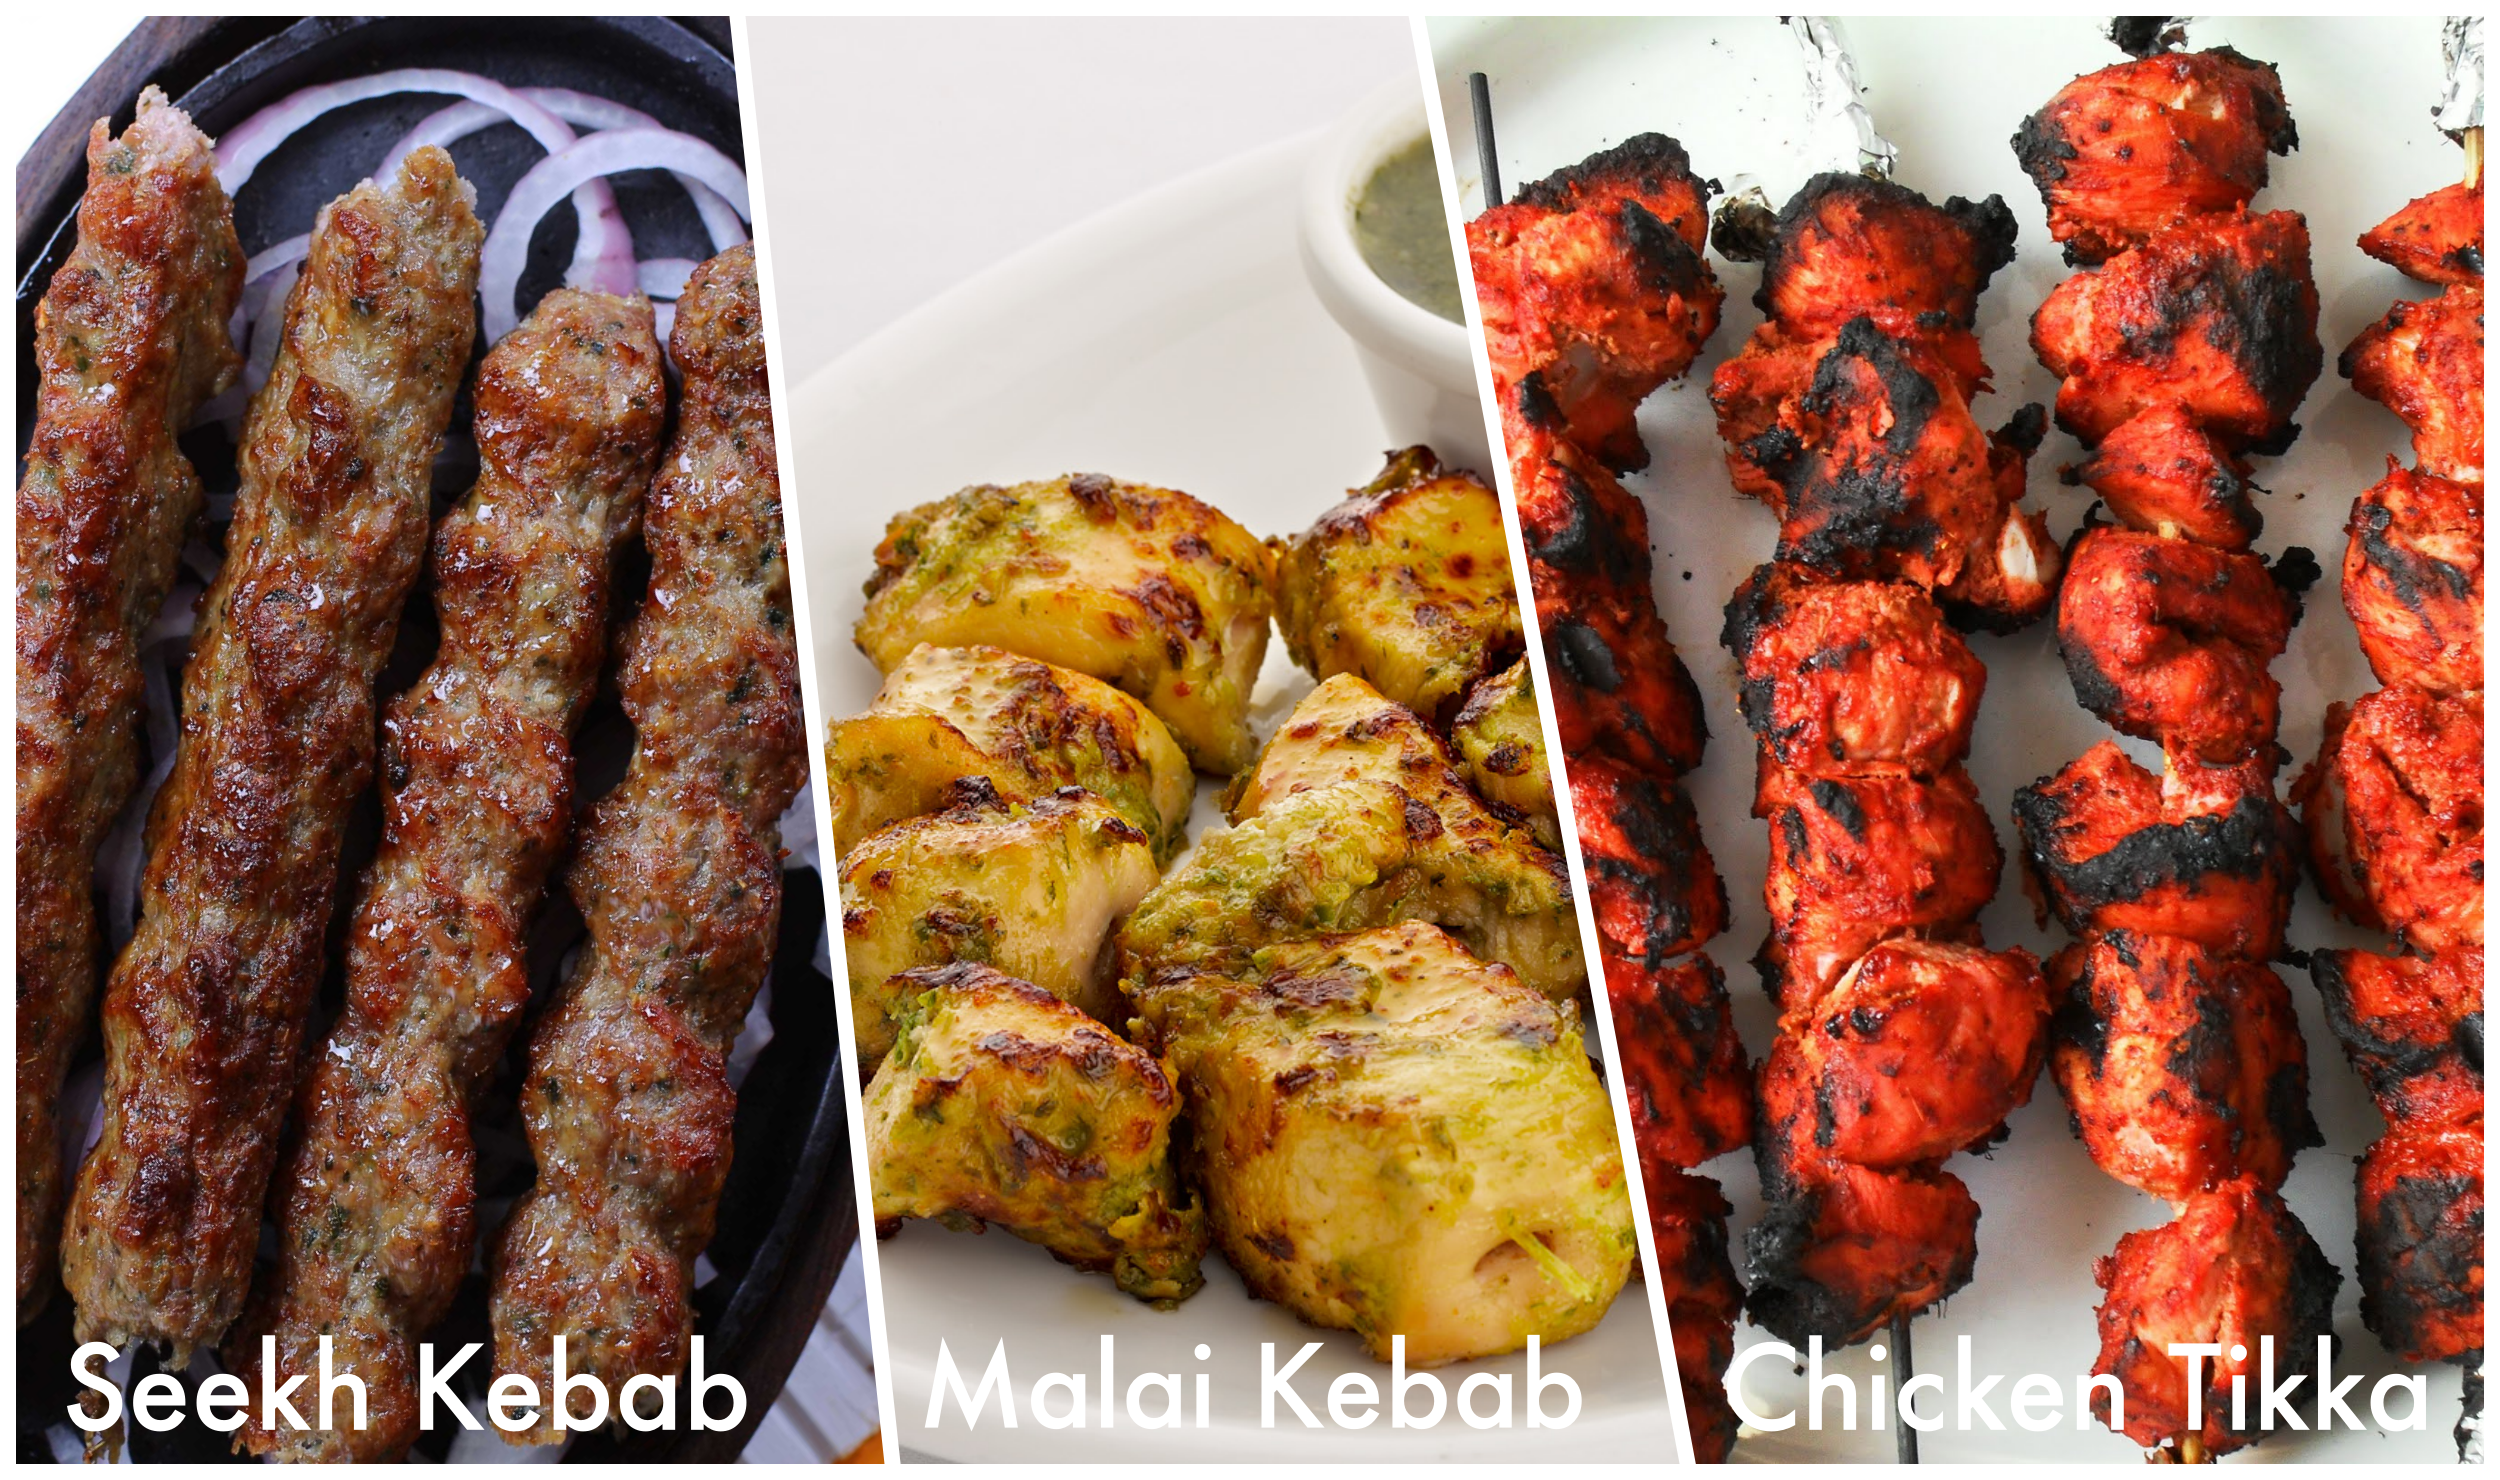 tandoorkebab collage.png